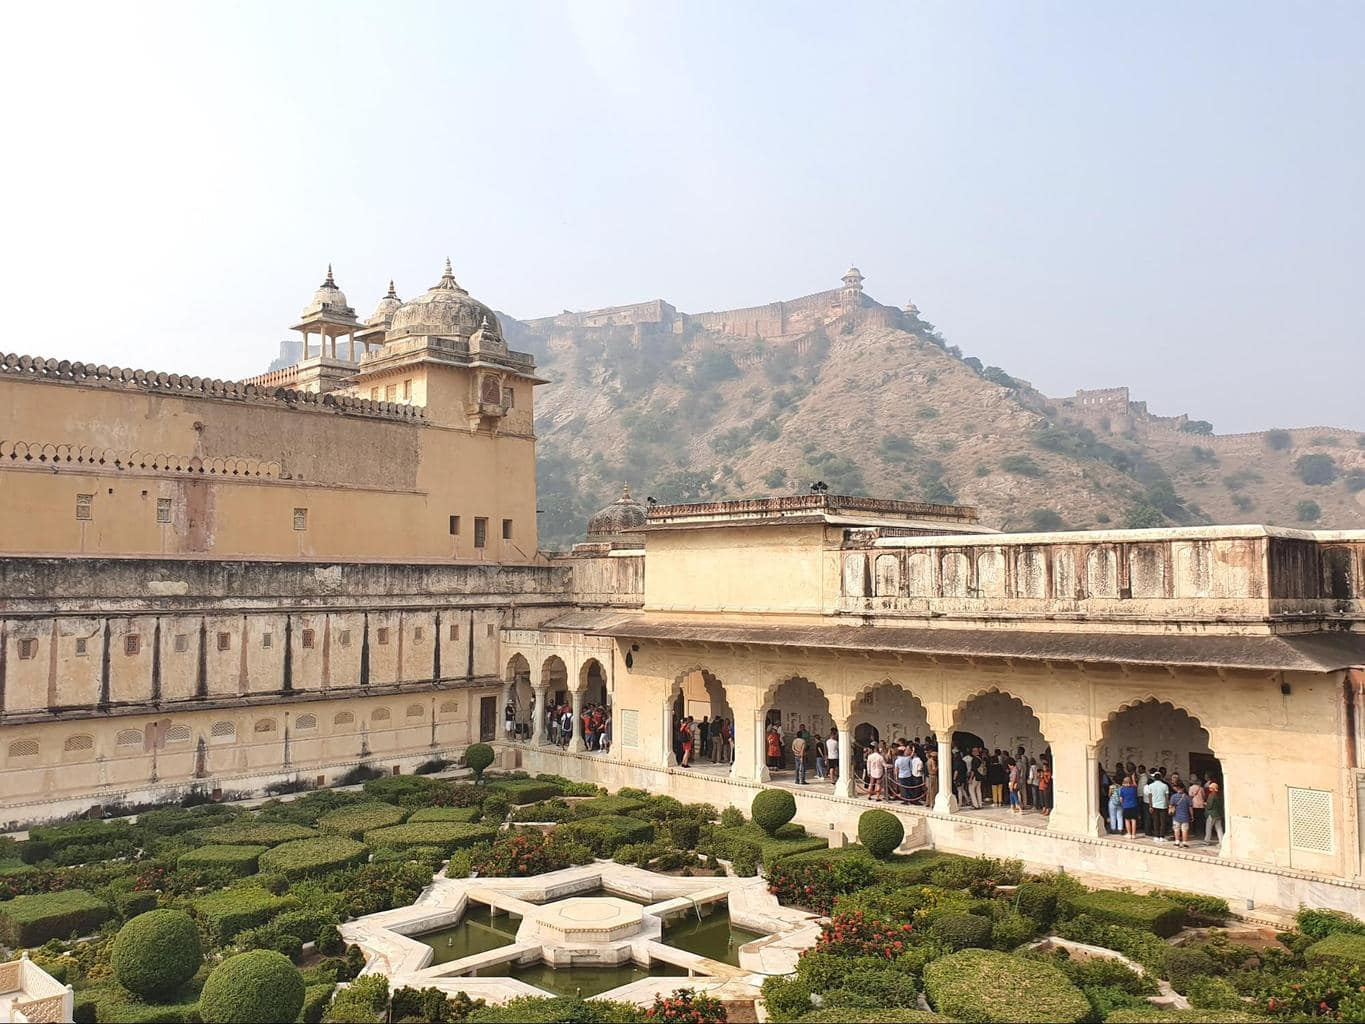 Shuk Niwas, Palace of Pleasure, at Amer Fort